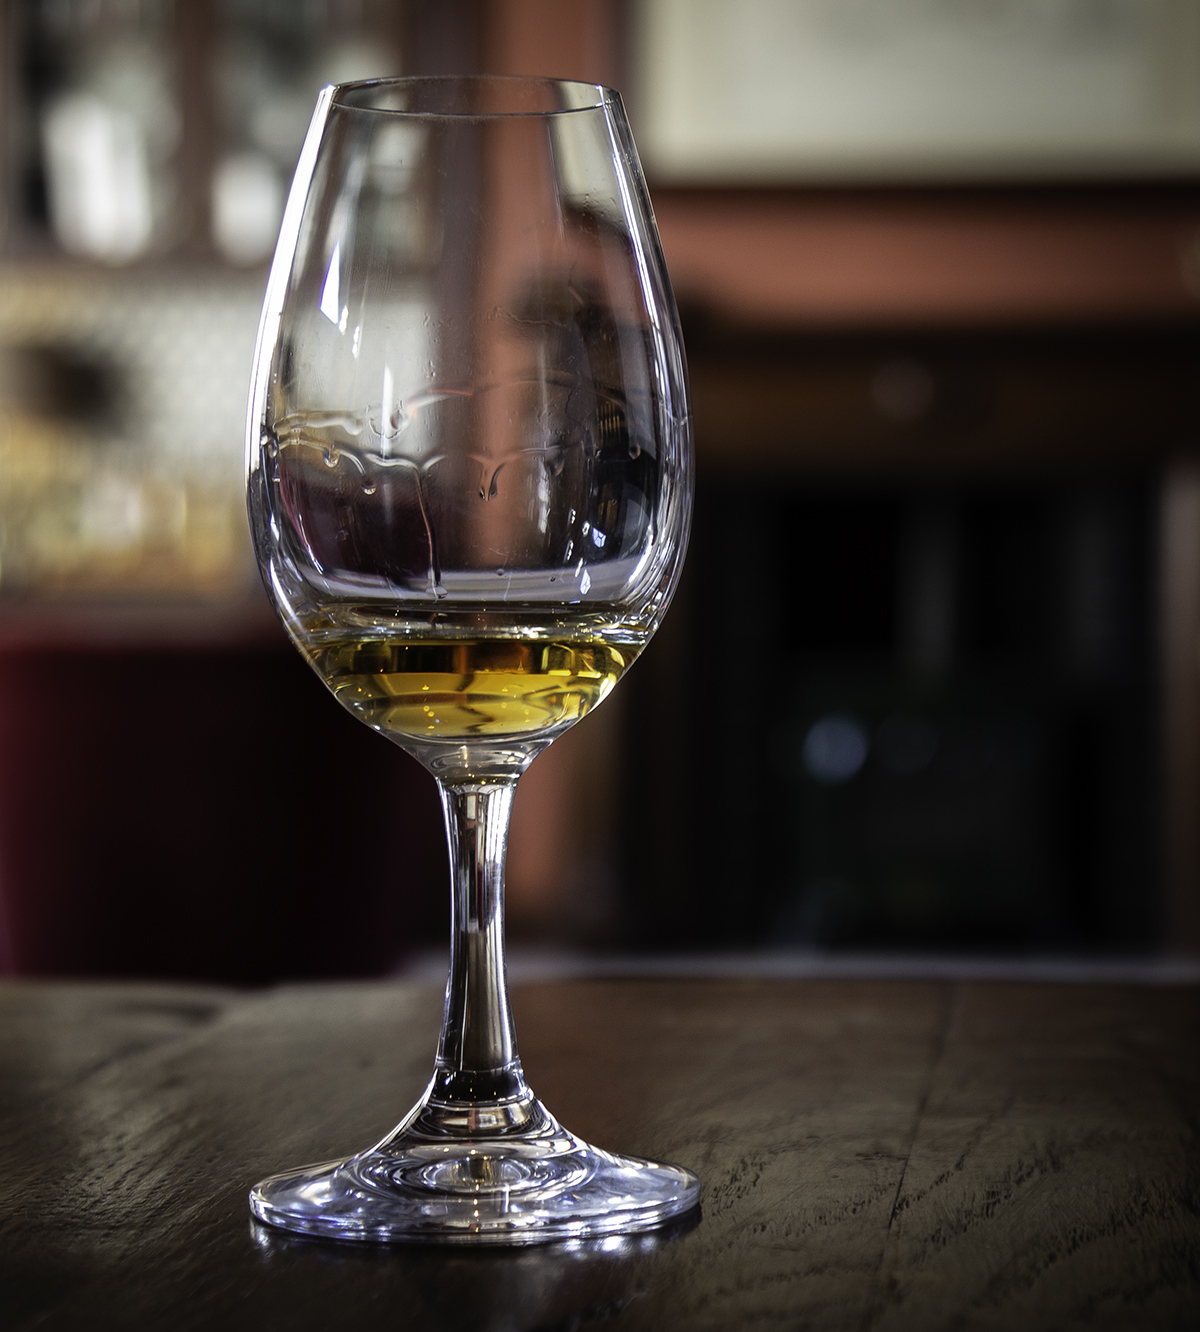 There are few things in life as photogenic as the light playing off a glass of whisky in just the right way...